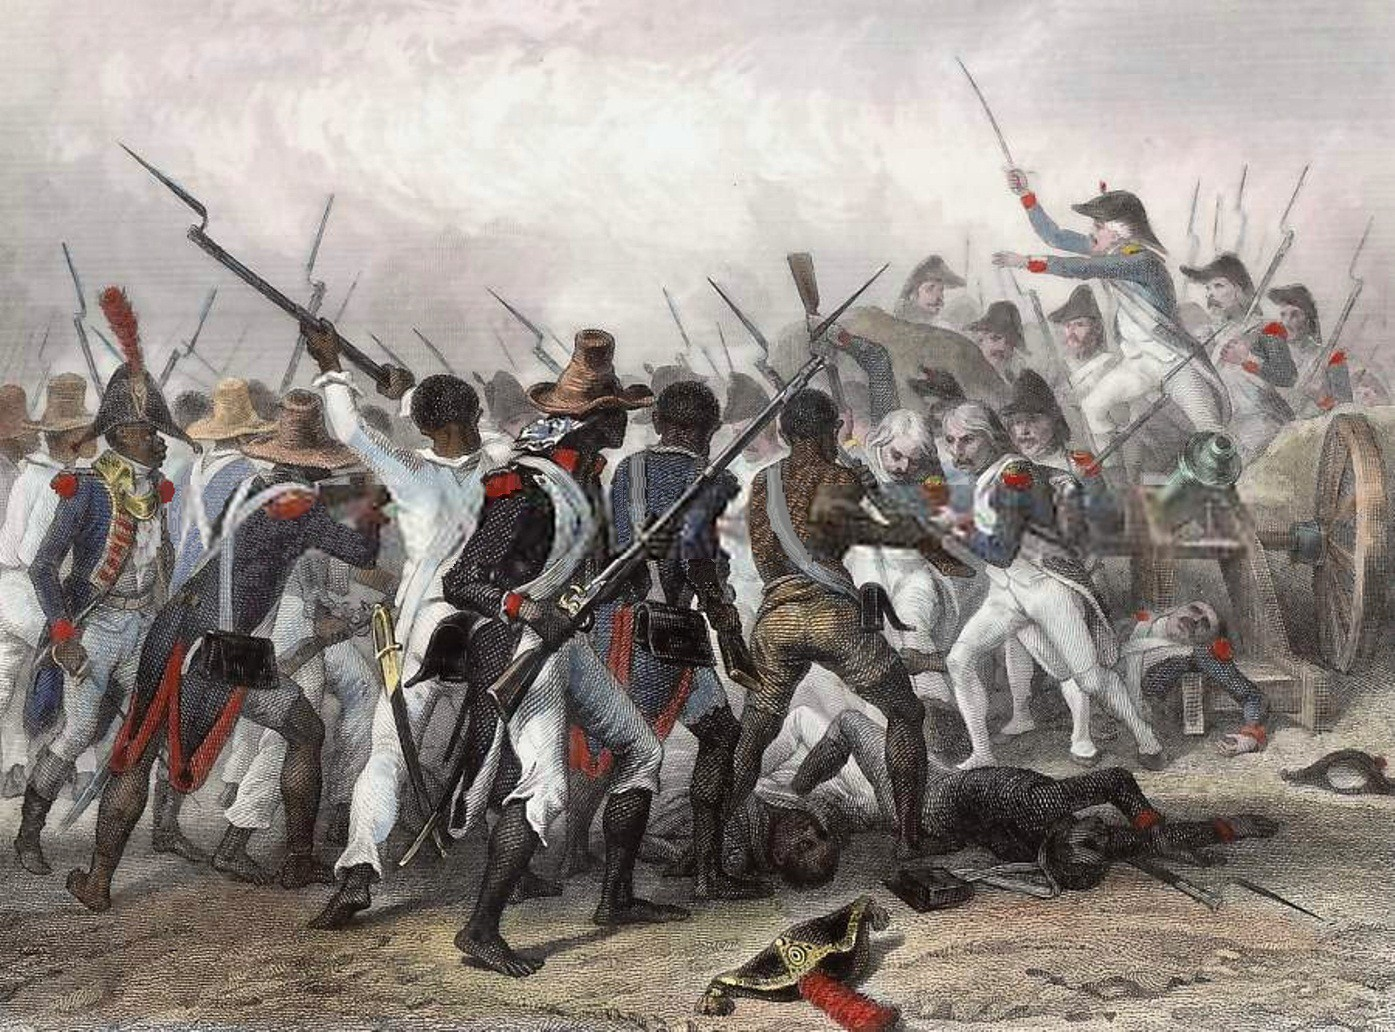 haitian revolution the slaves free non whites The revolution builds 1791-1792 24 september 1791 the national assembly in france revokes the may 15 decree, which had granted limited rights to free blacks and mulattoes, and names three commissioners to restore order in saint-domingue.